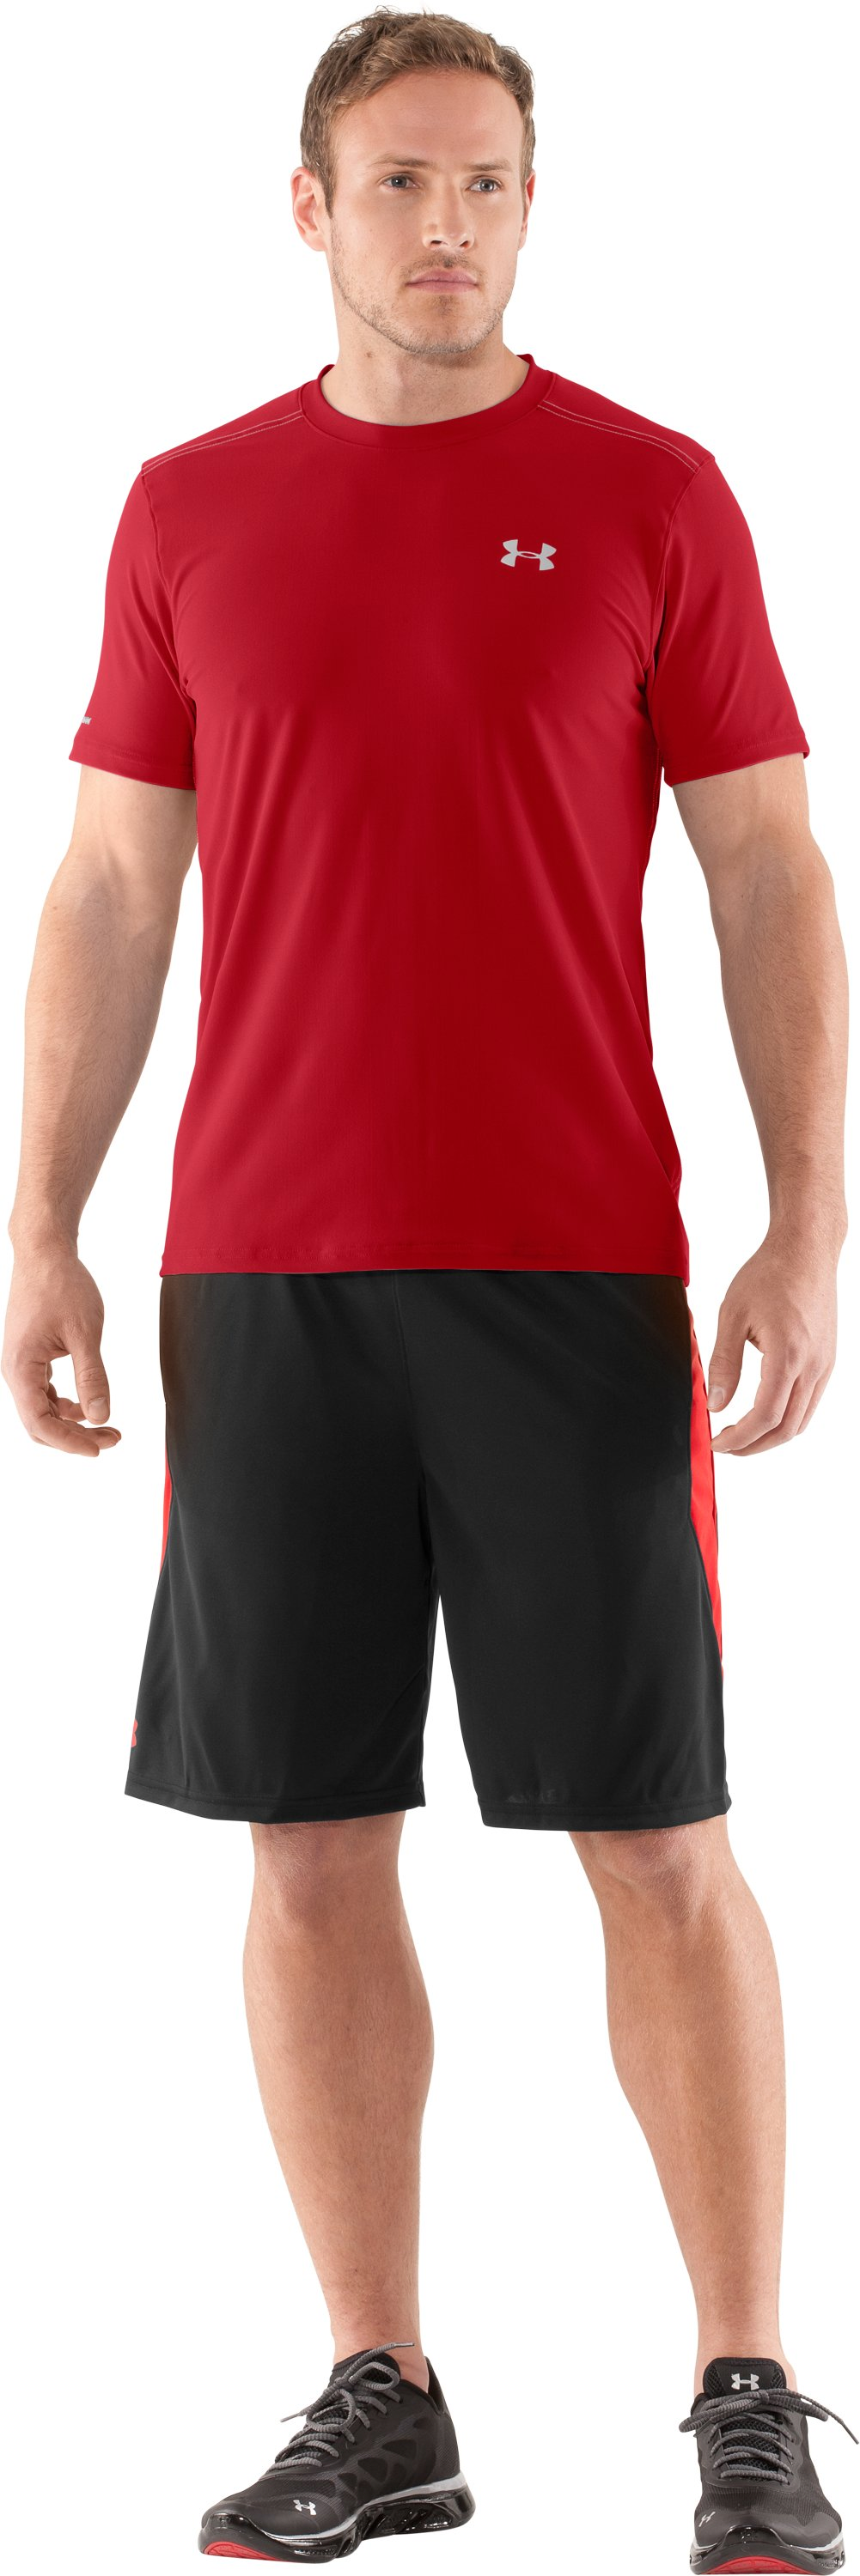 Men's coldblack® Short Sleeve T-Shirt, Red